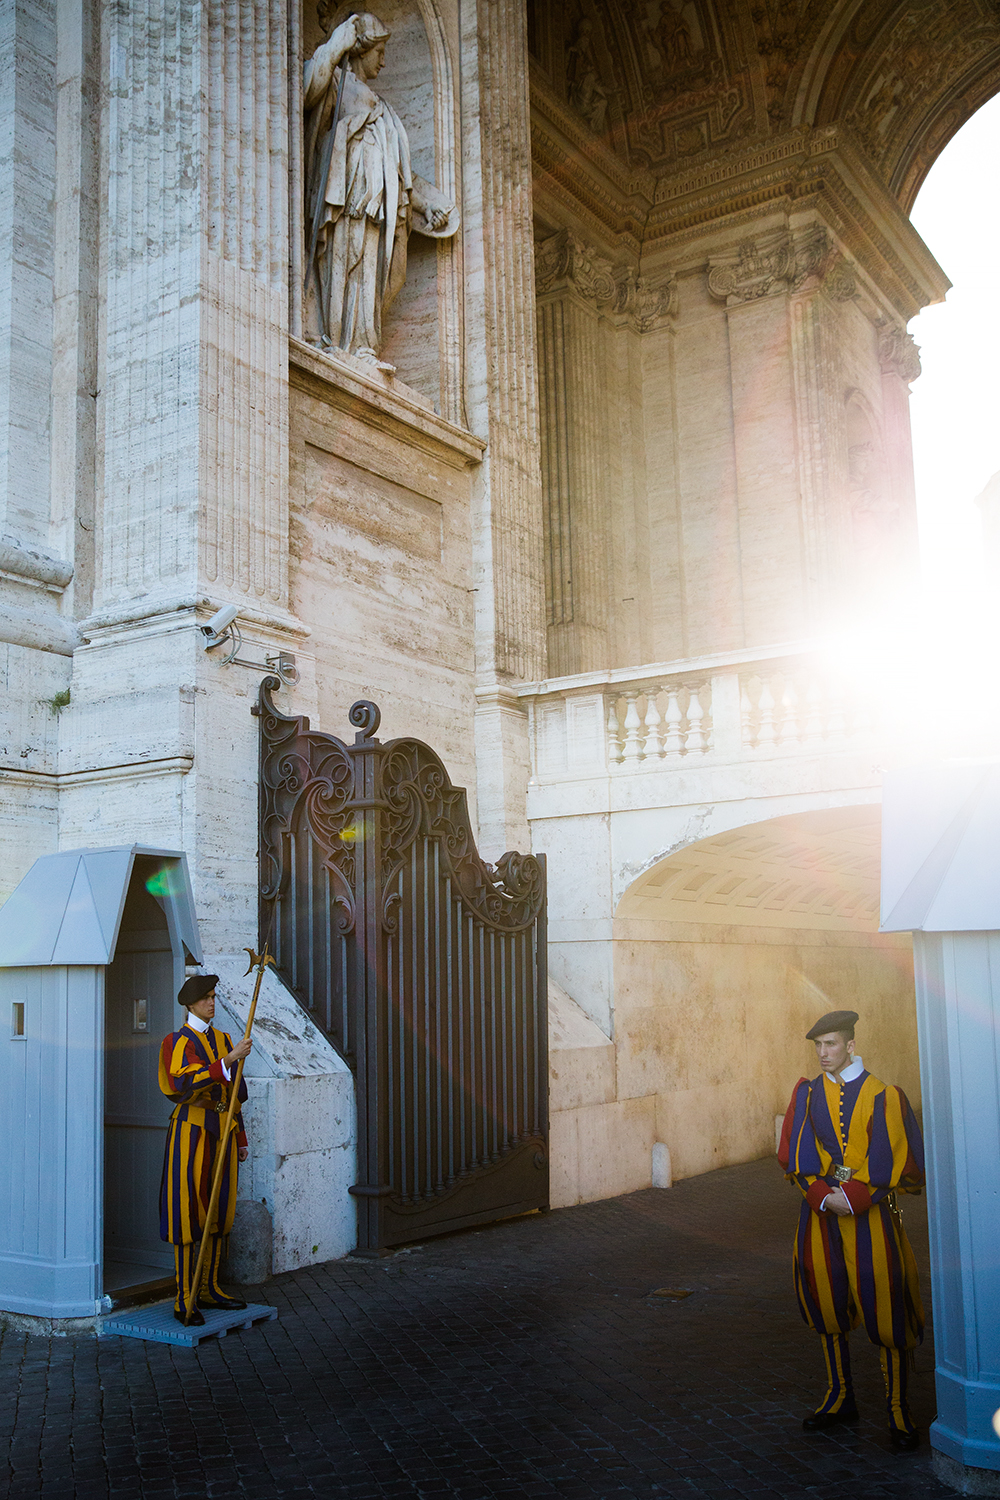 The Swiss Guard at the Vatican City